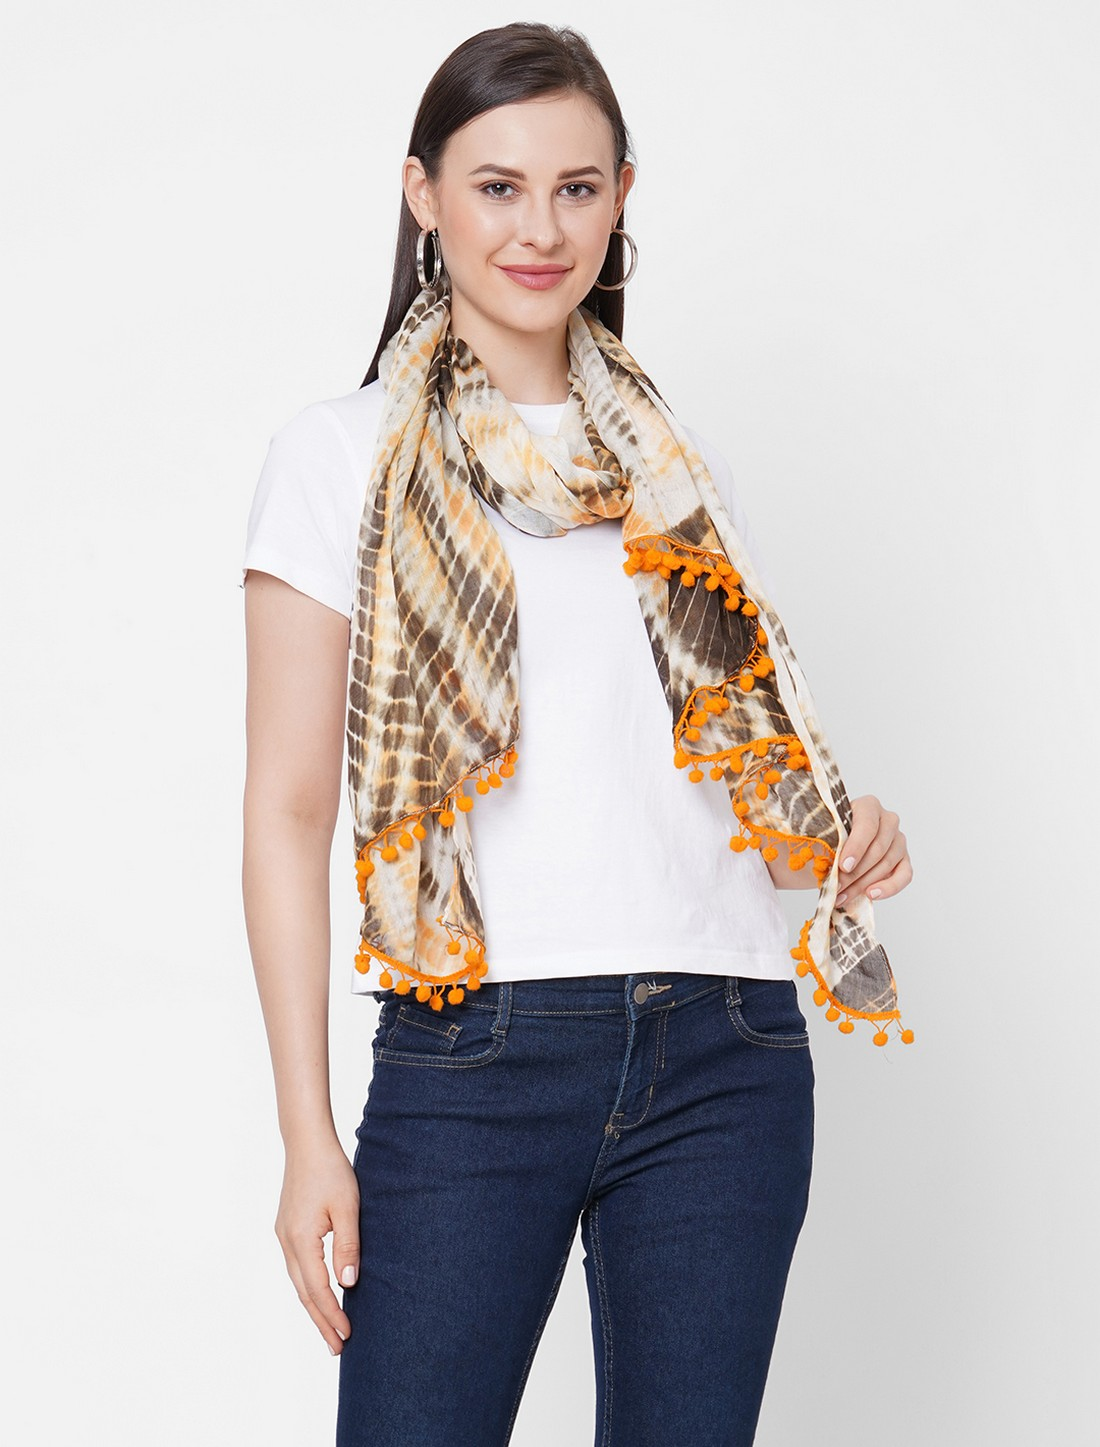 Get Wrapped | Get Wrapped Tie-Dye Large Scarves with Poms for Women